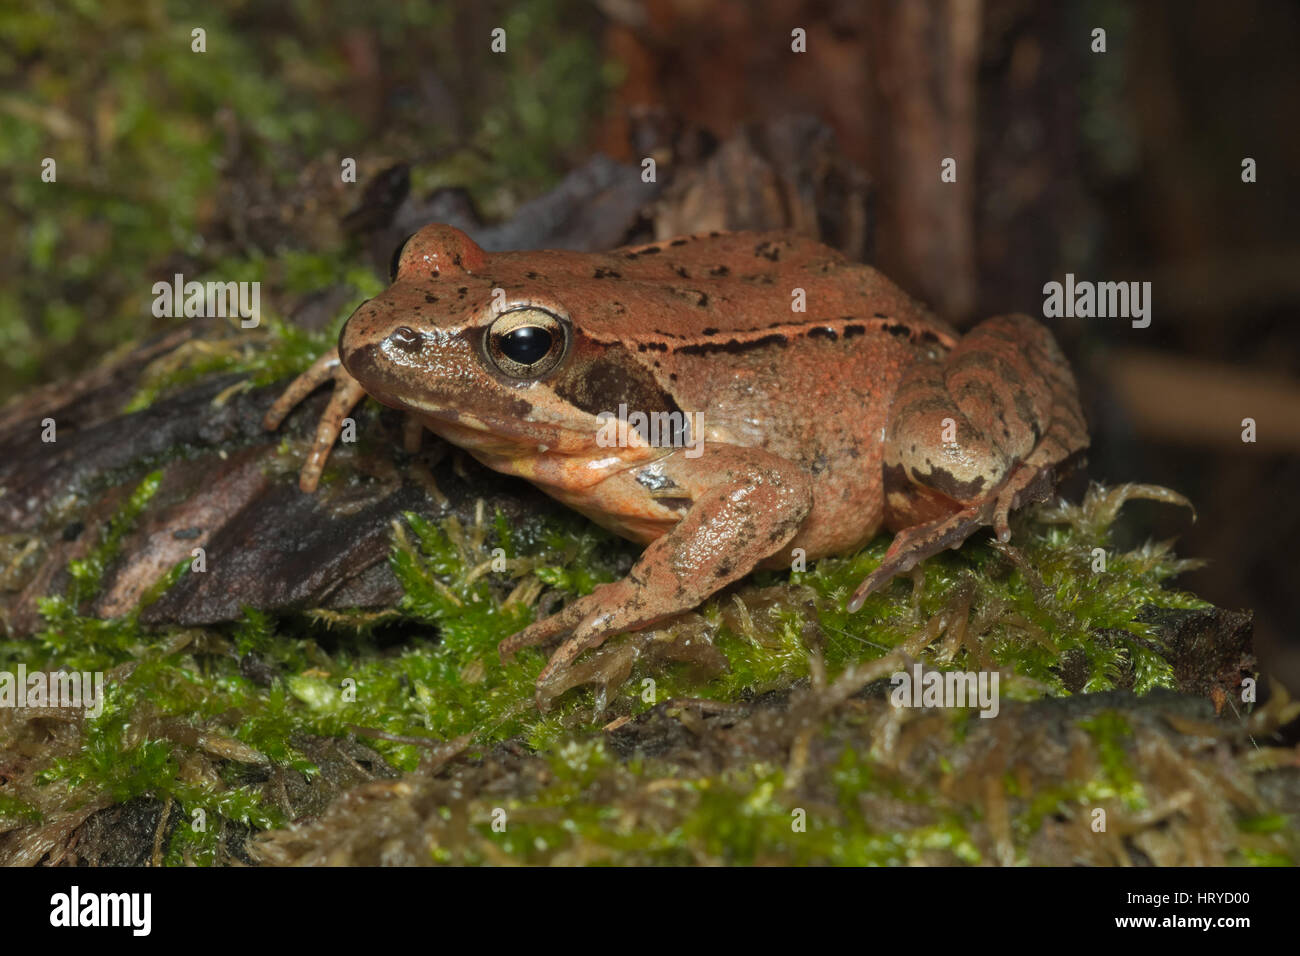 Male And Female Frog Stockfotos & Male And Female Frog Bilder ...